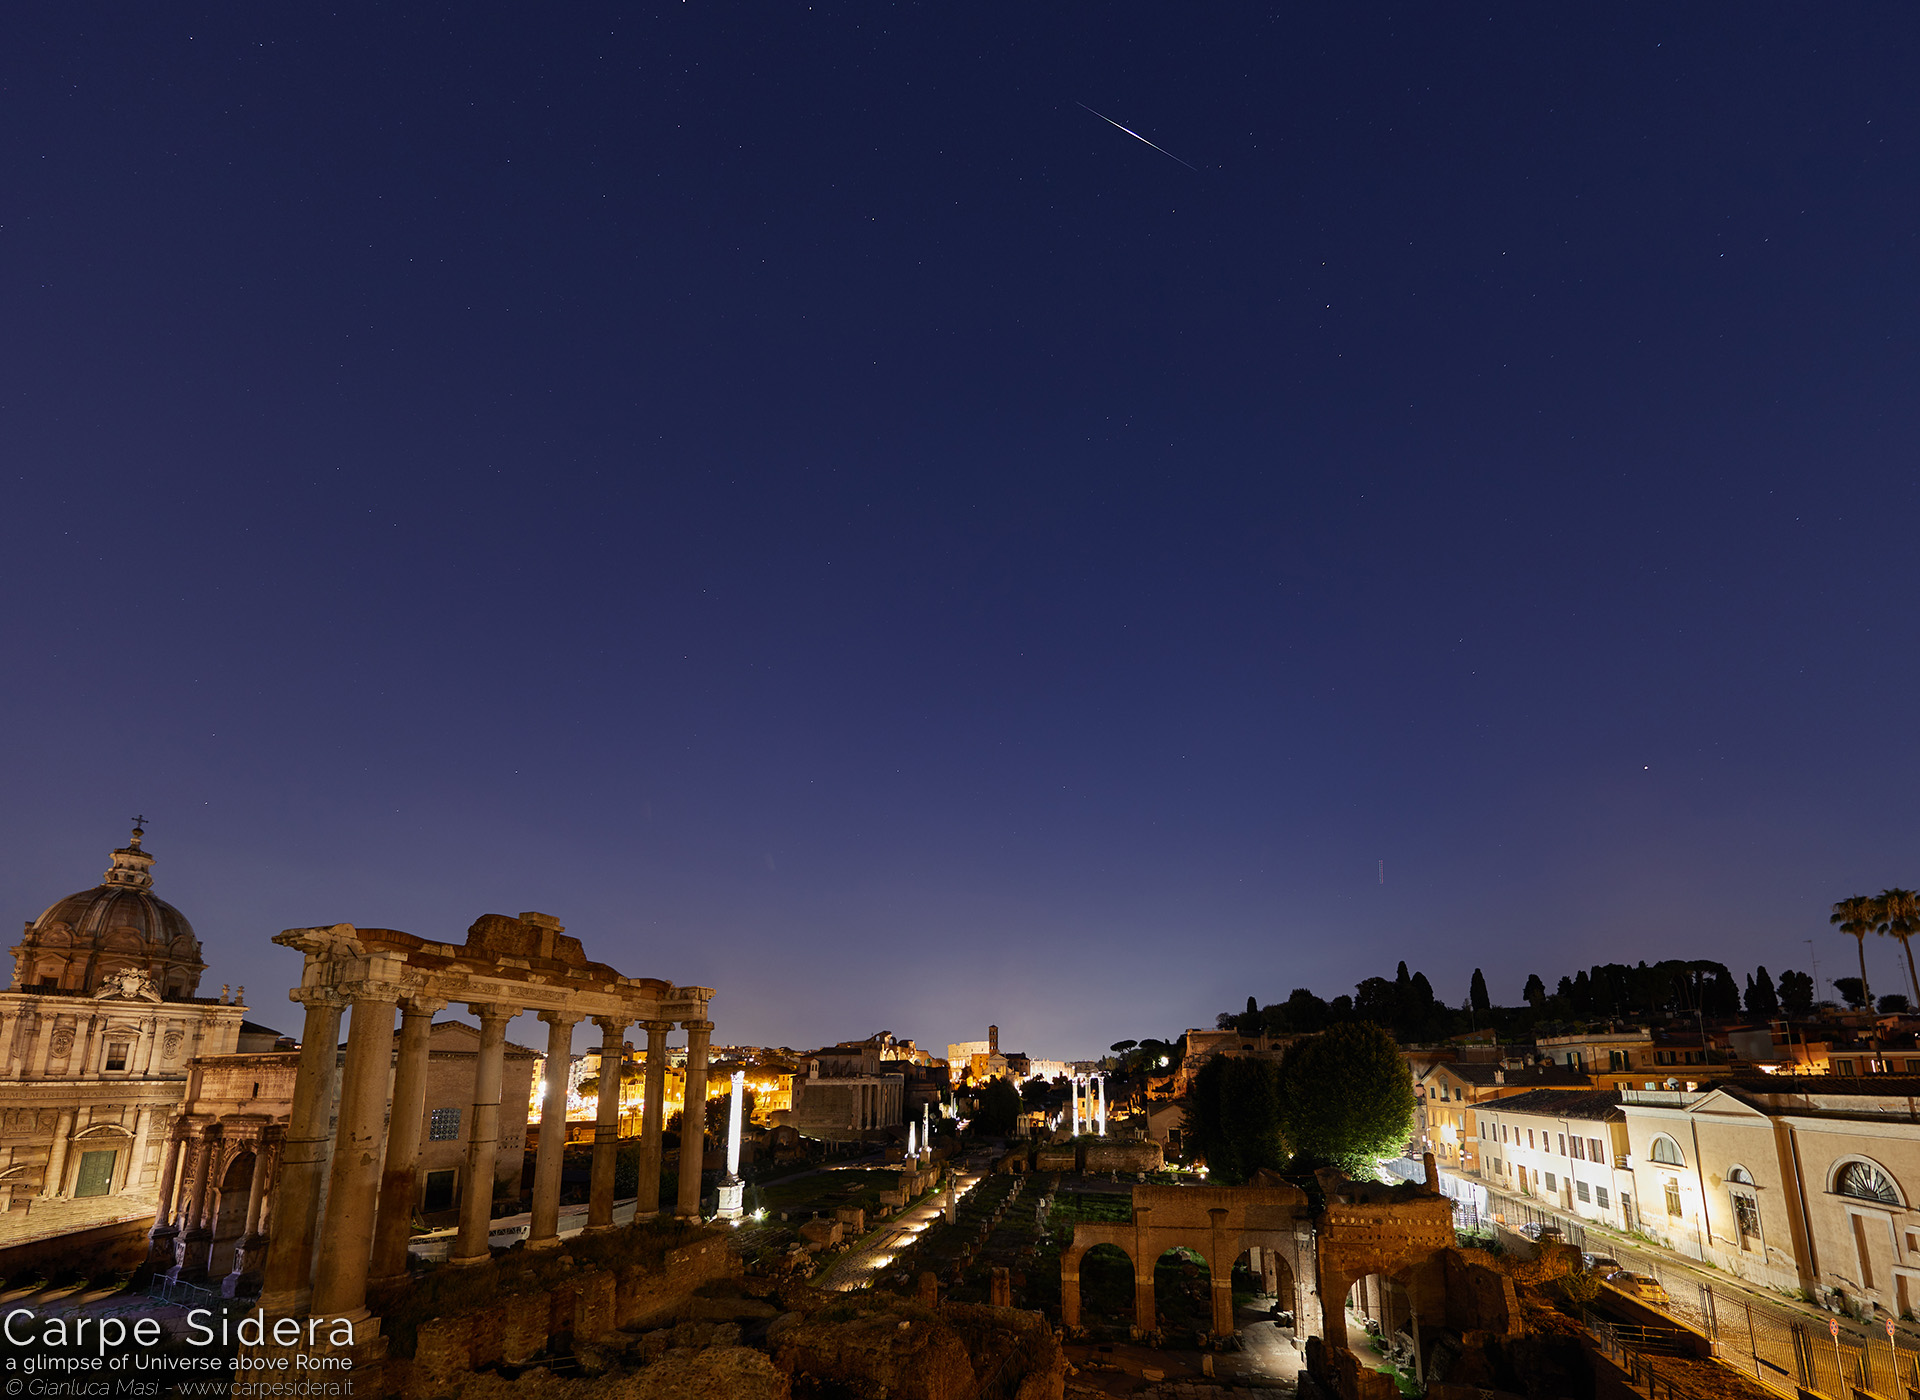 25. The Iridium 45 satellite shines above the Roman Forum.